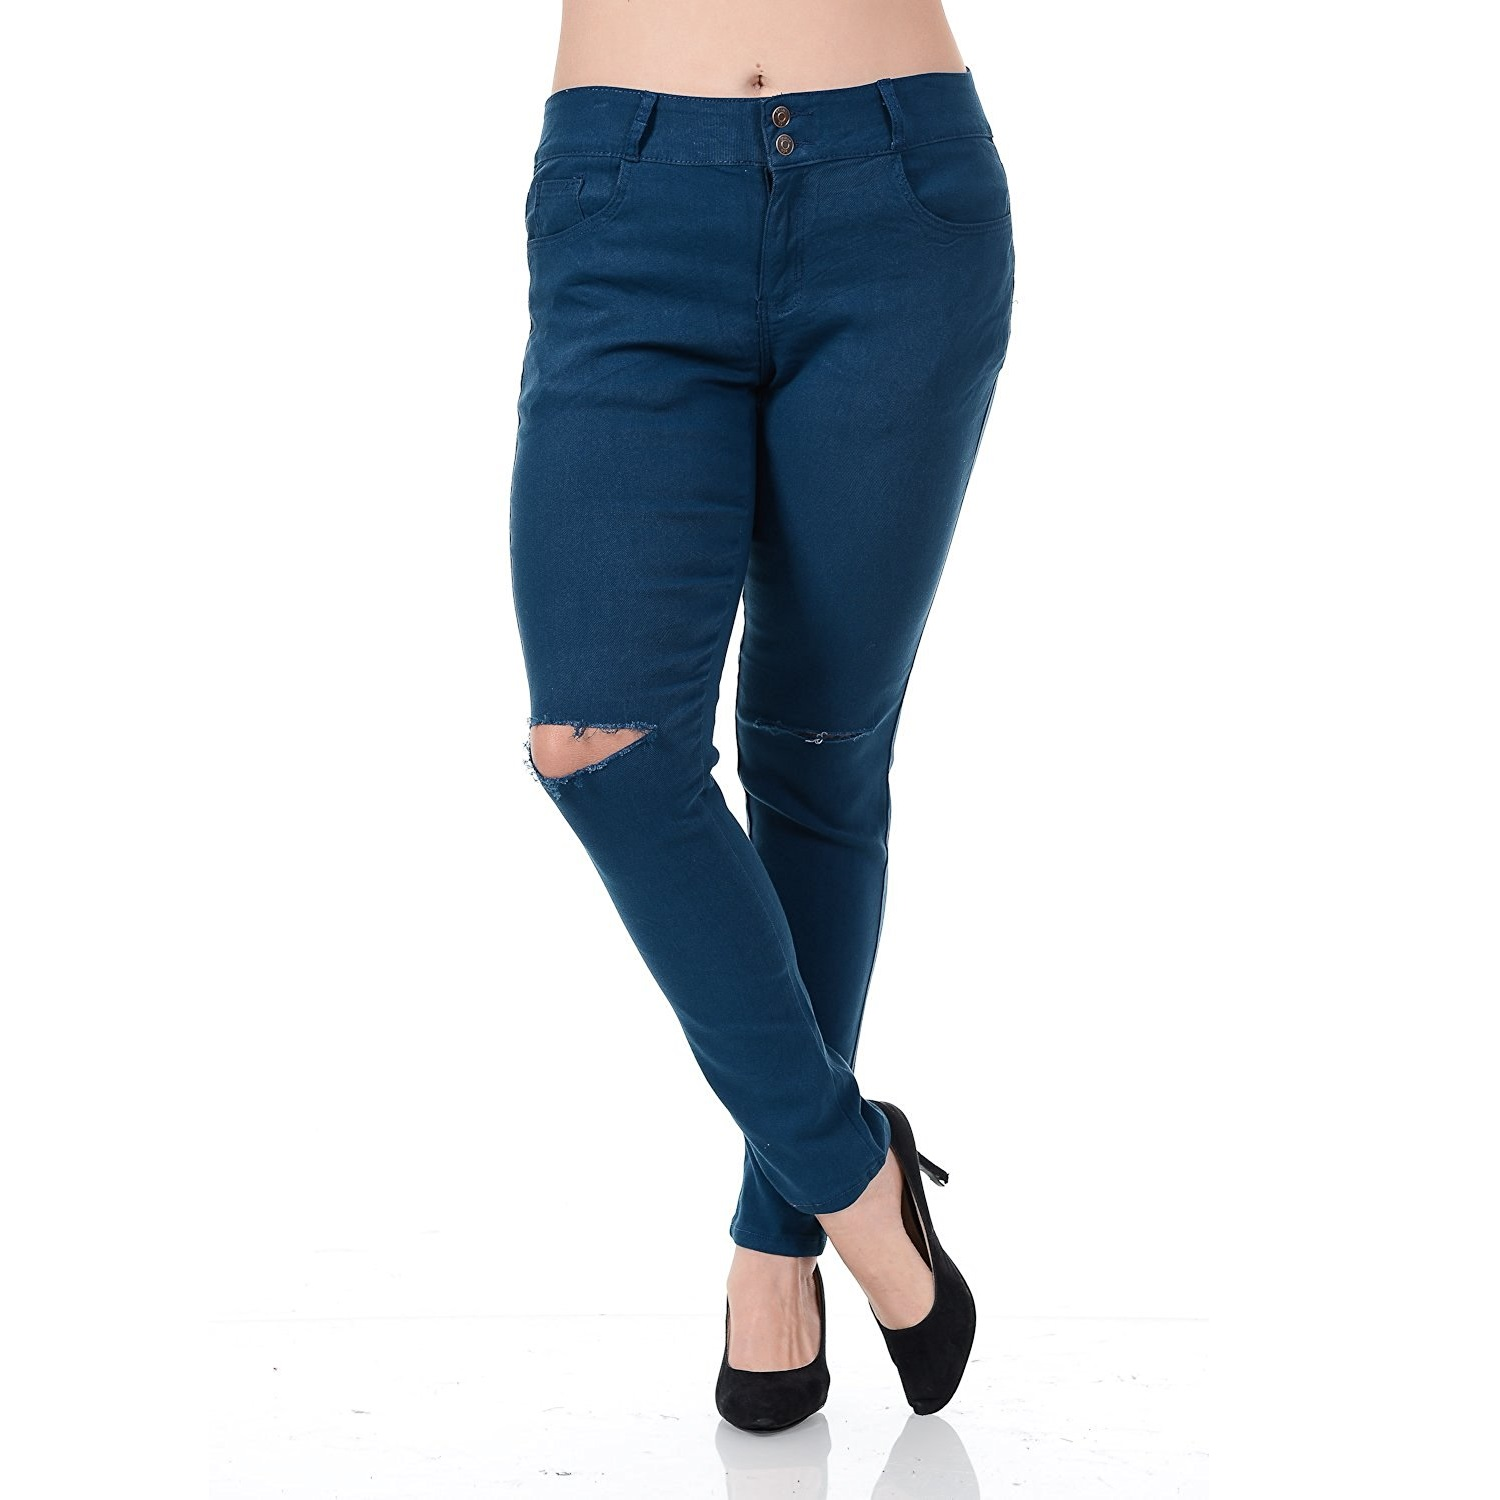 WX Womens Plus Size Distressed Knee Hole Ripped Stretch Jeans Skinny Twill Pants